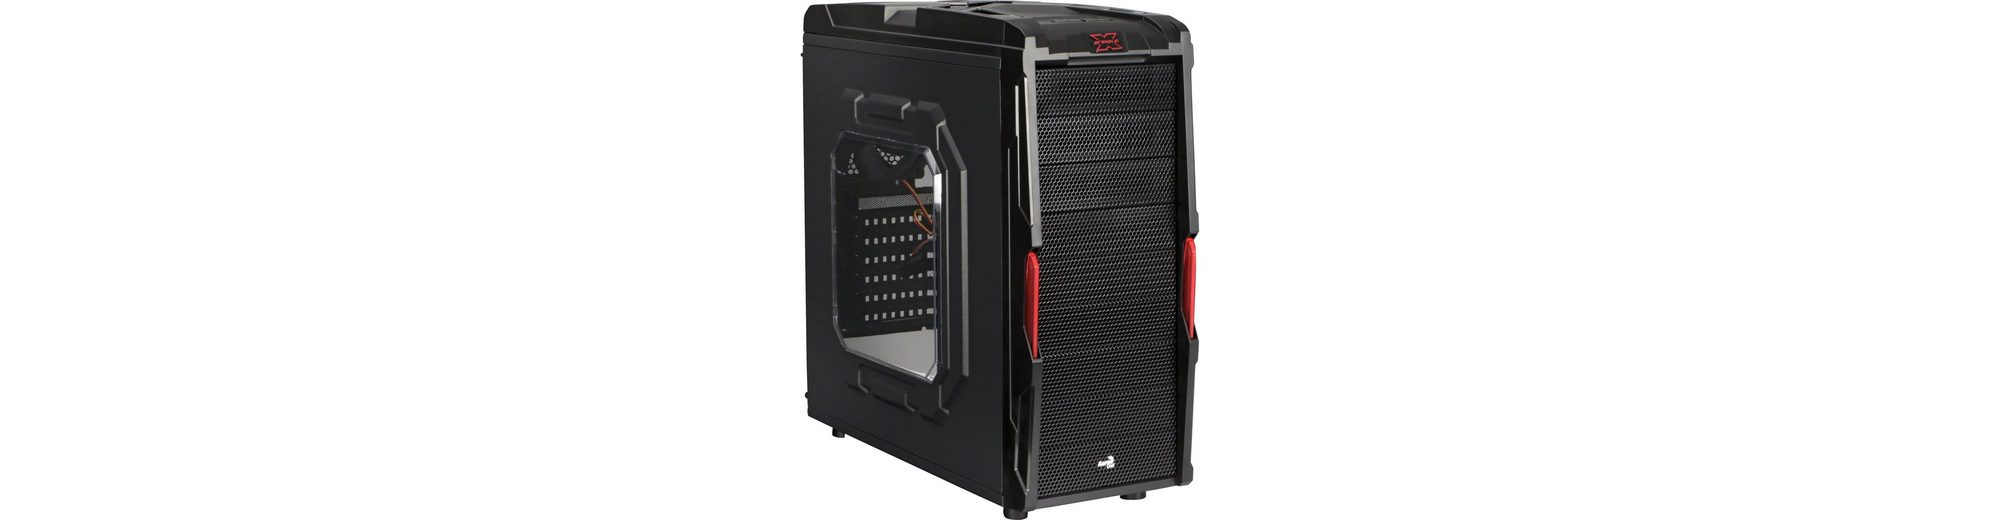 Aerocool Tower-Gehäuse »Strike-X Coupe«